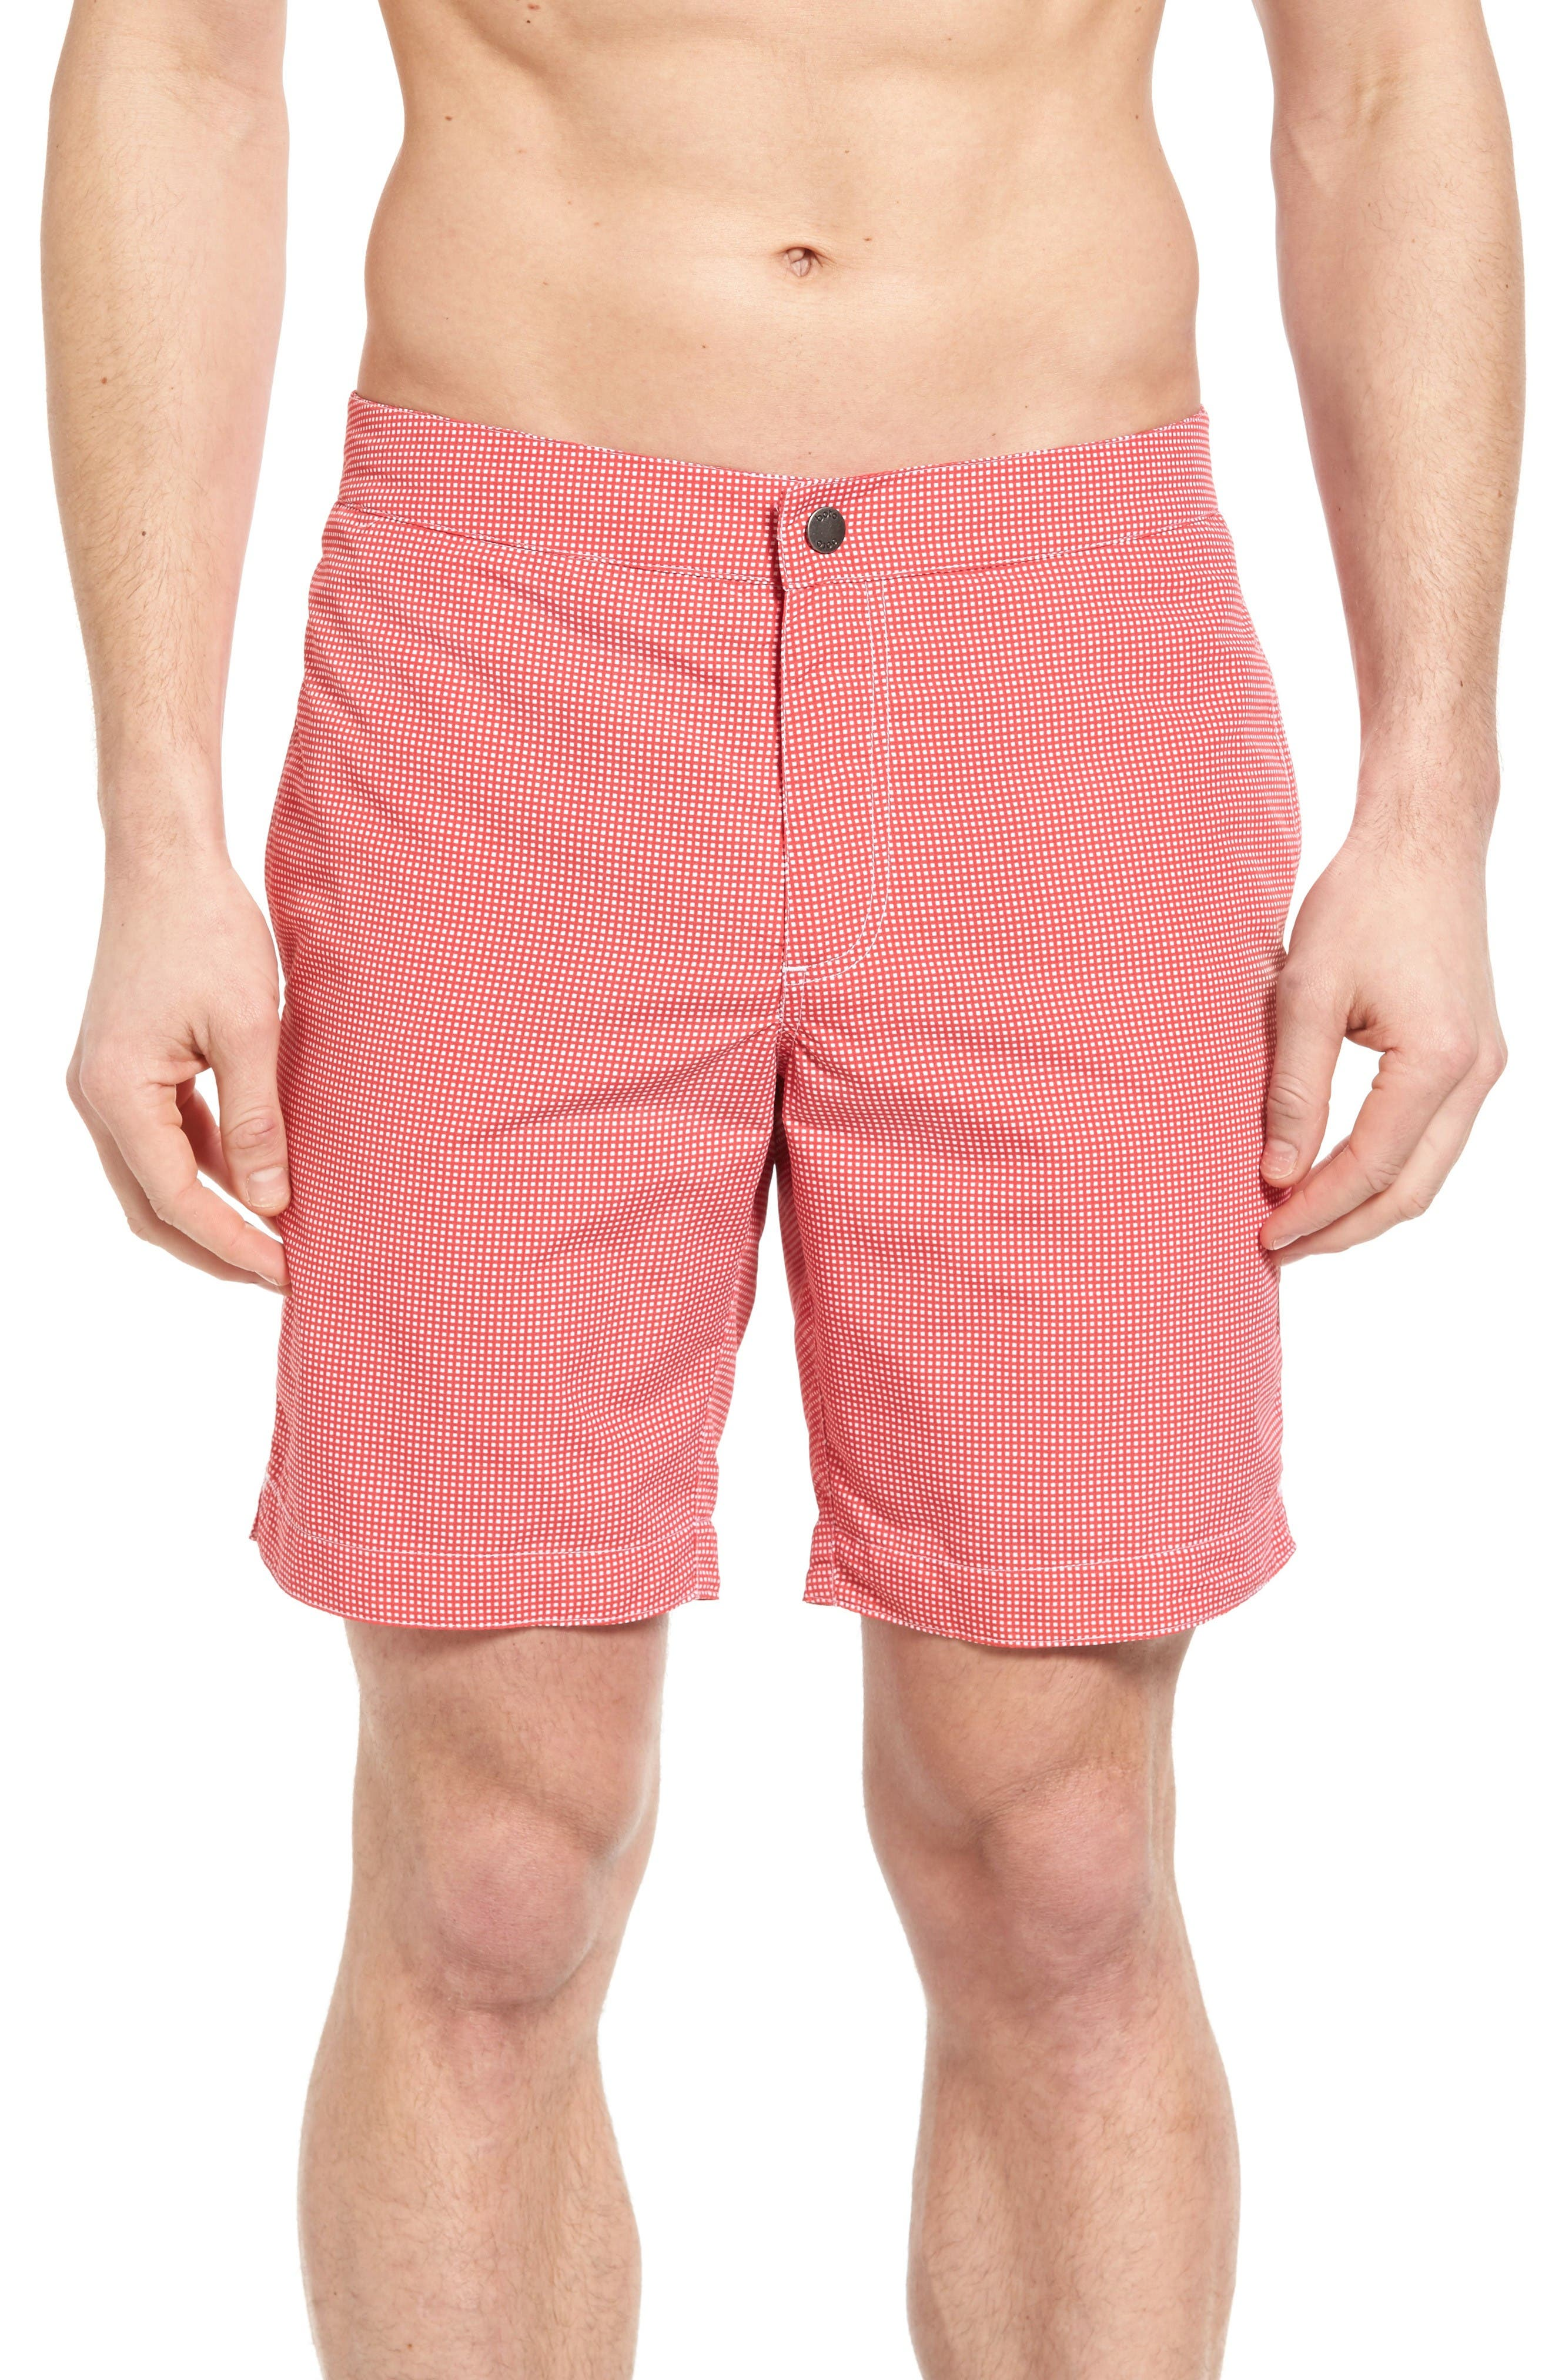 Aruba Microcheck Tailored Fit 8.5 Inch Swim Trunks,                             Main thumbnail 1, color,                             Coral